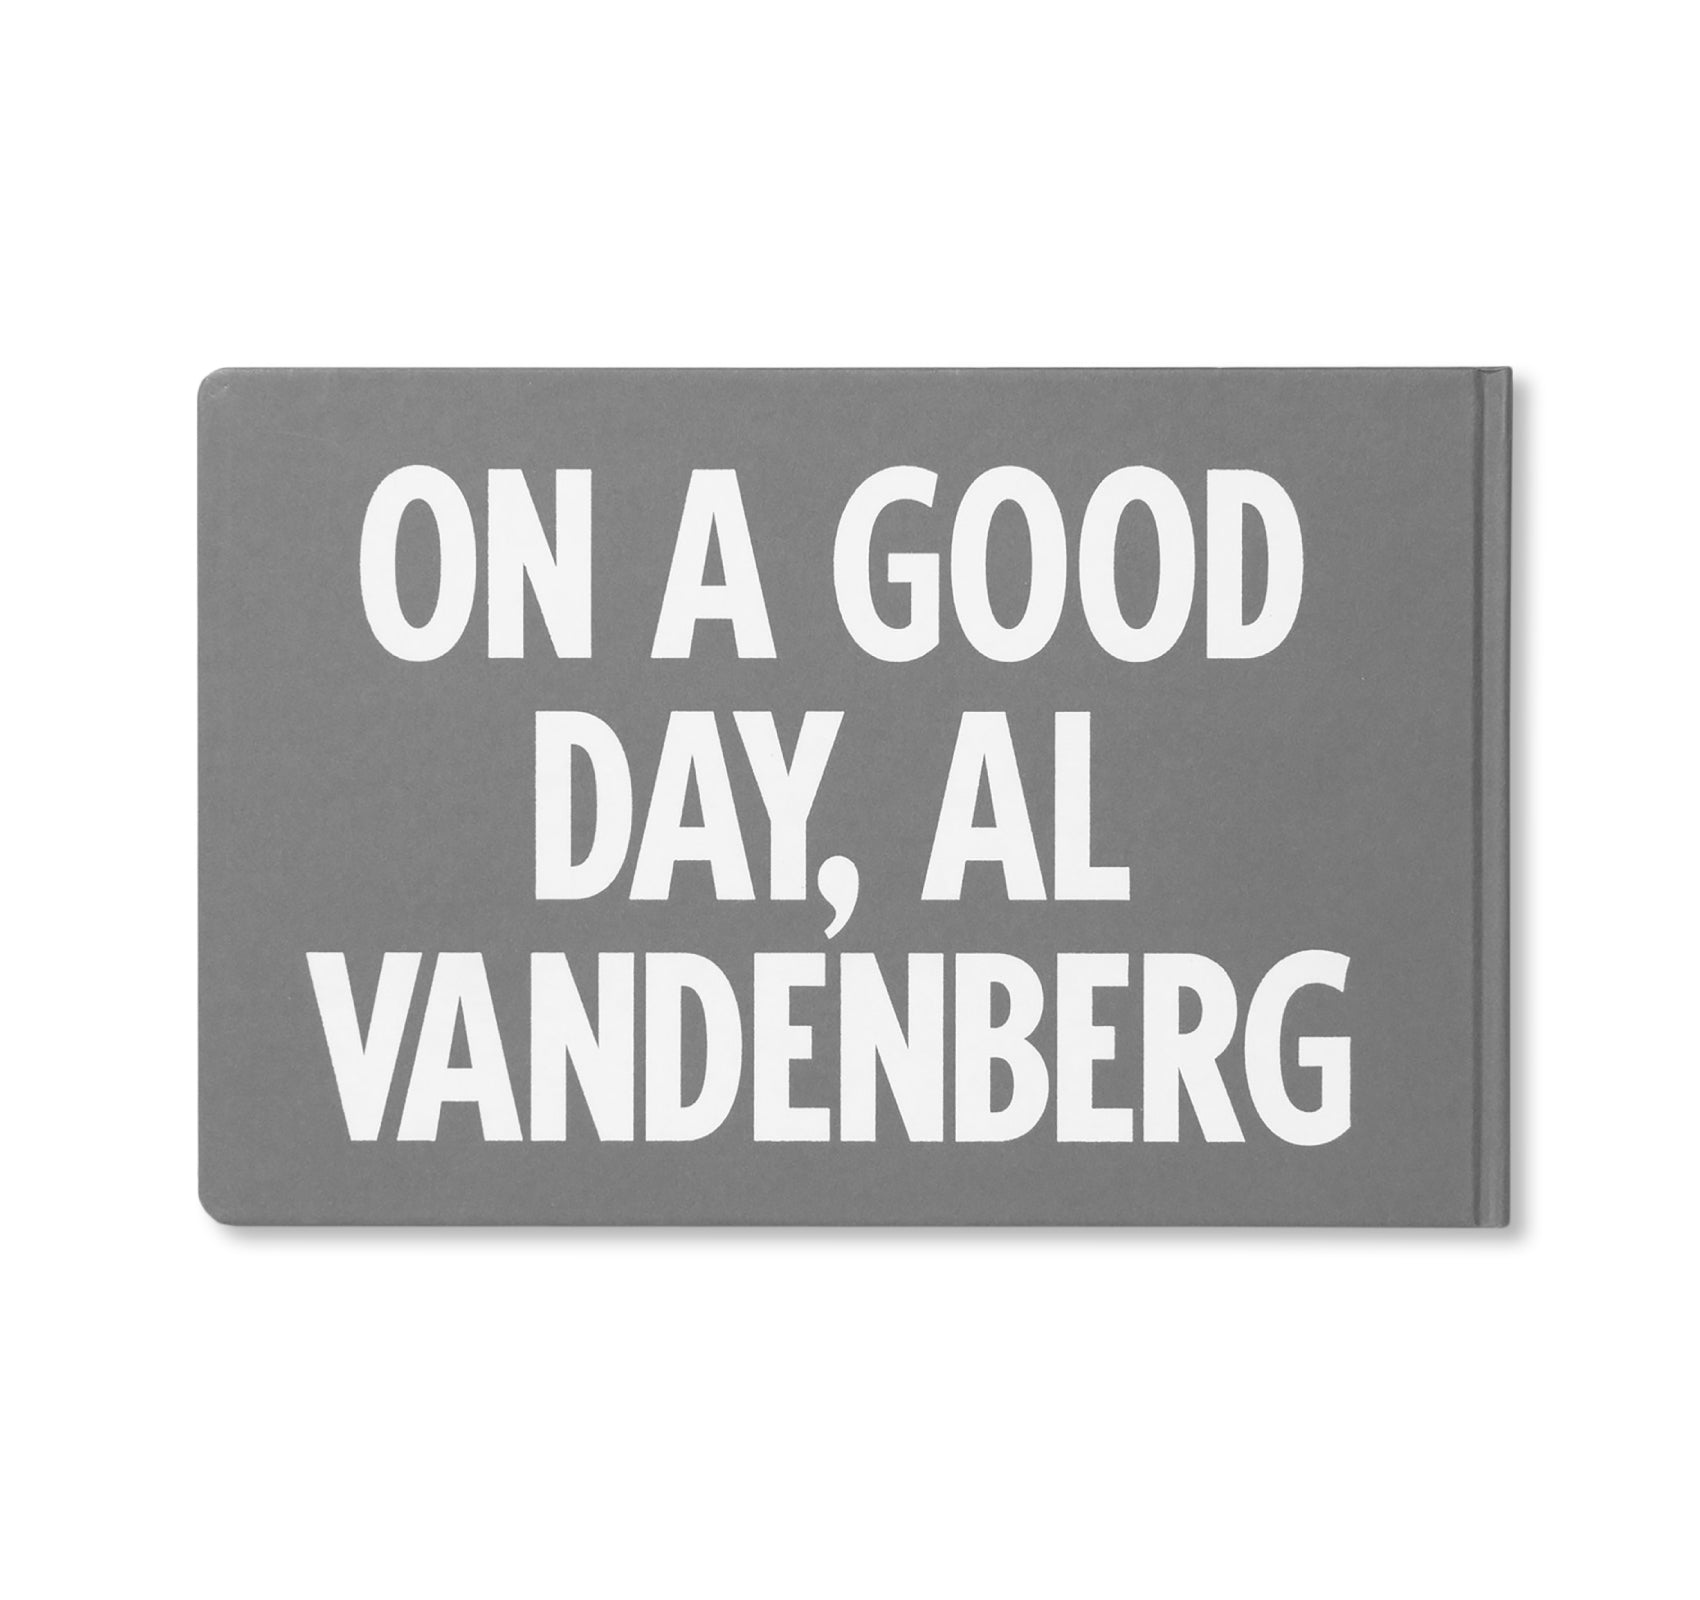 ON A GOOD DAY by Al Vandenberg